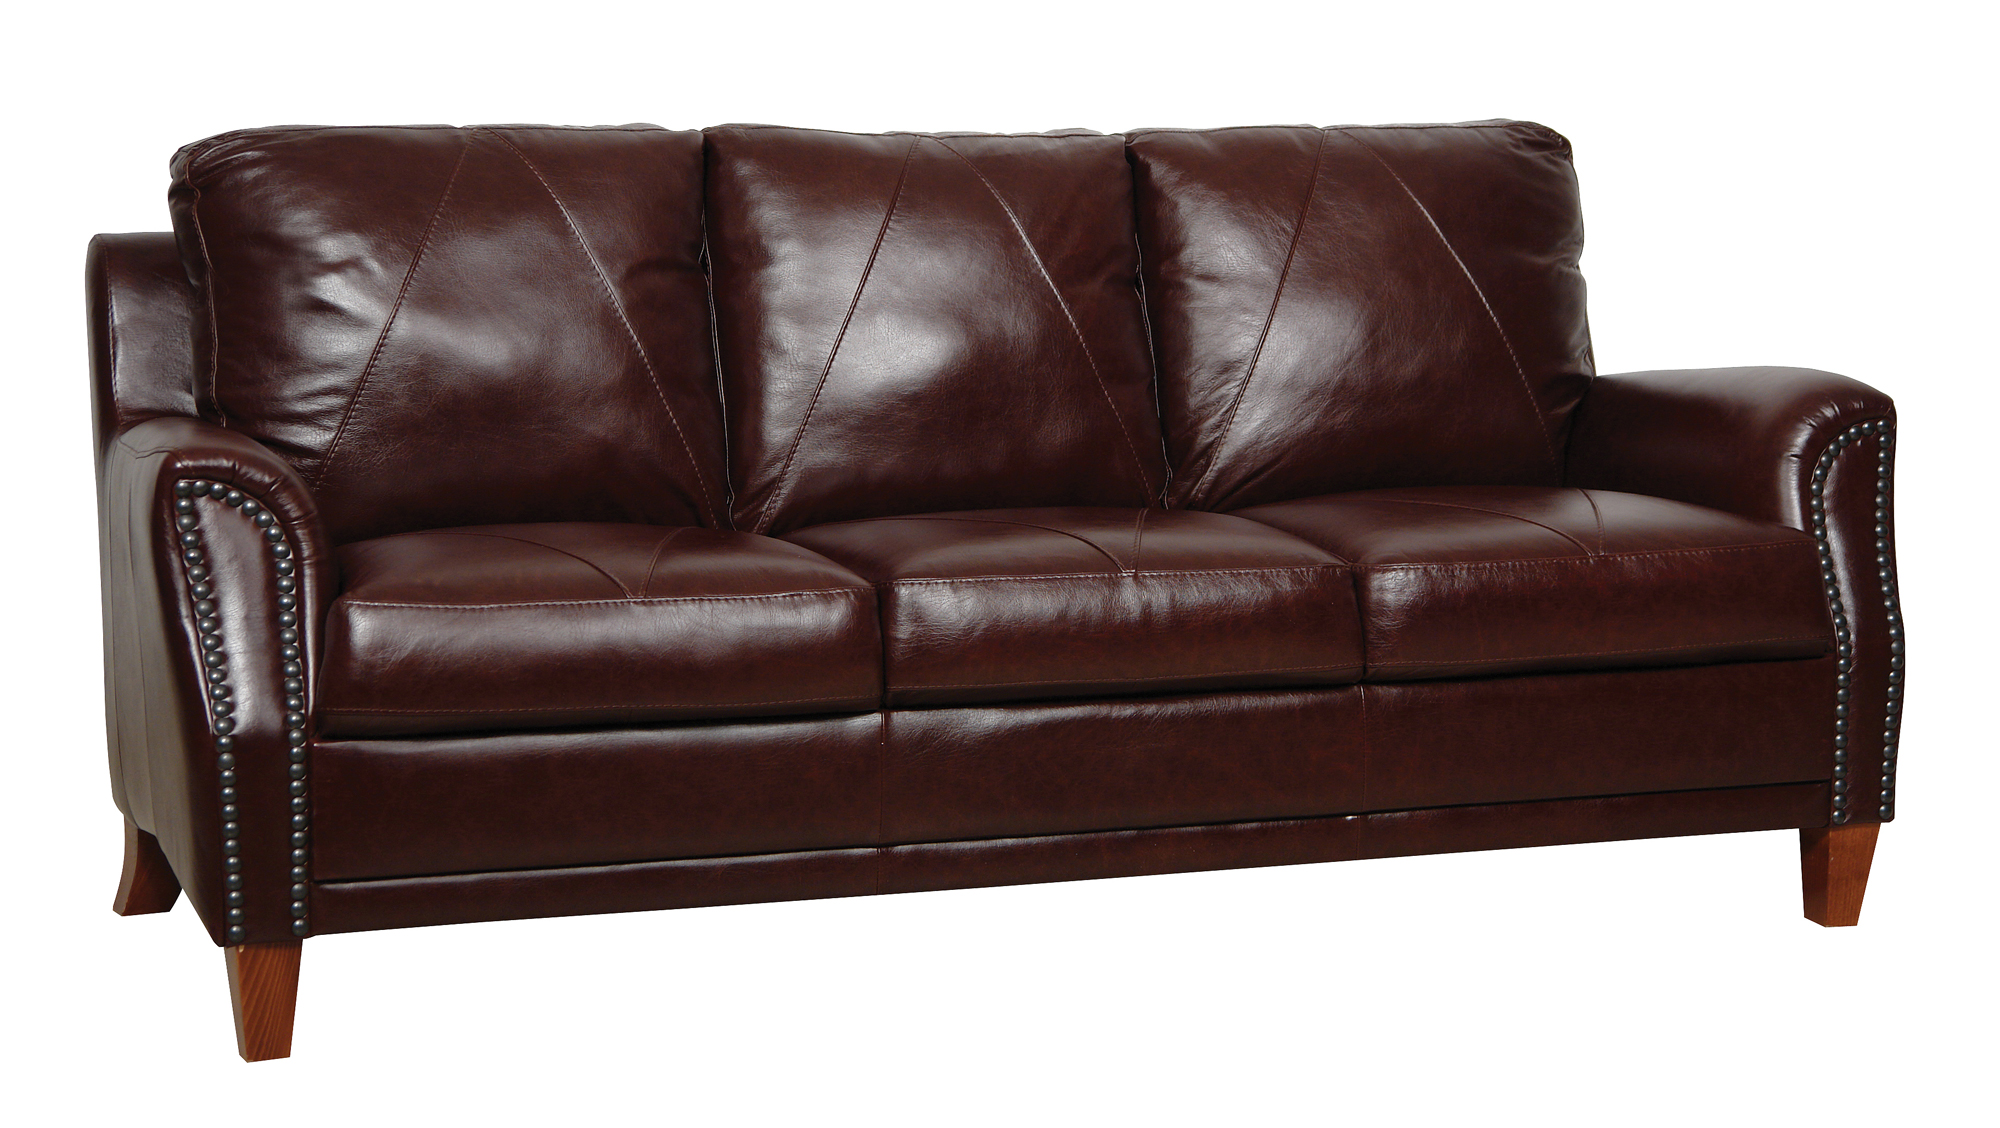 Austin Group Luke Leather Furniture